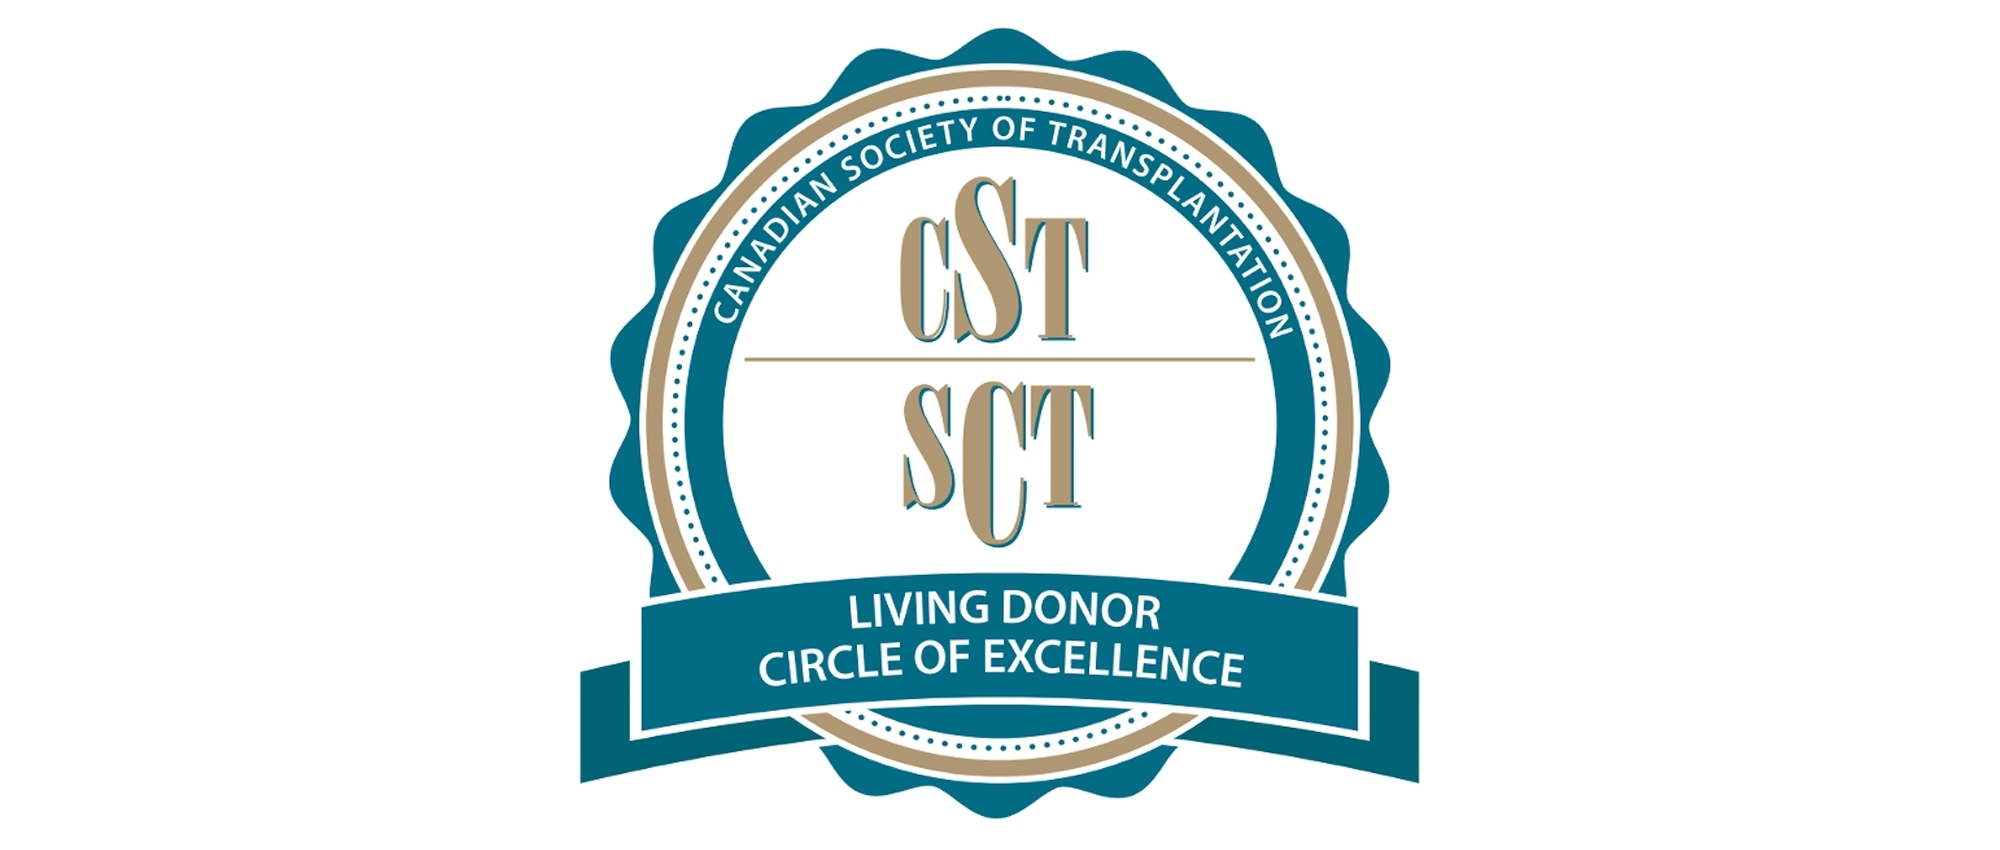 Logo for the Canadian Society of Transplantation's Circle of Excellence for employers who support employees to become living organ donors.